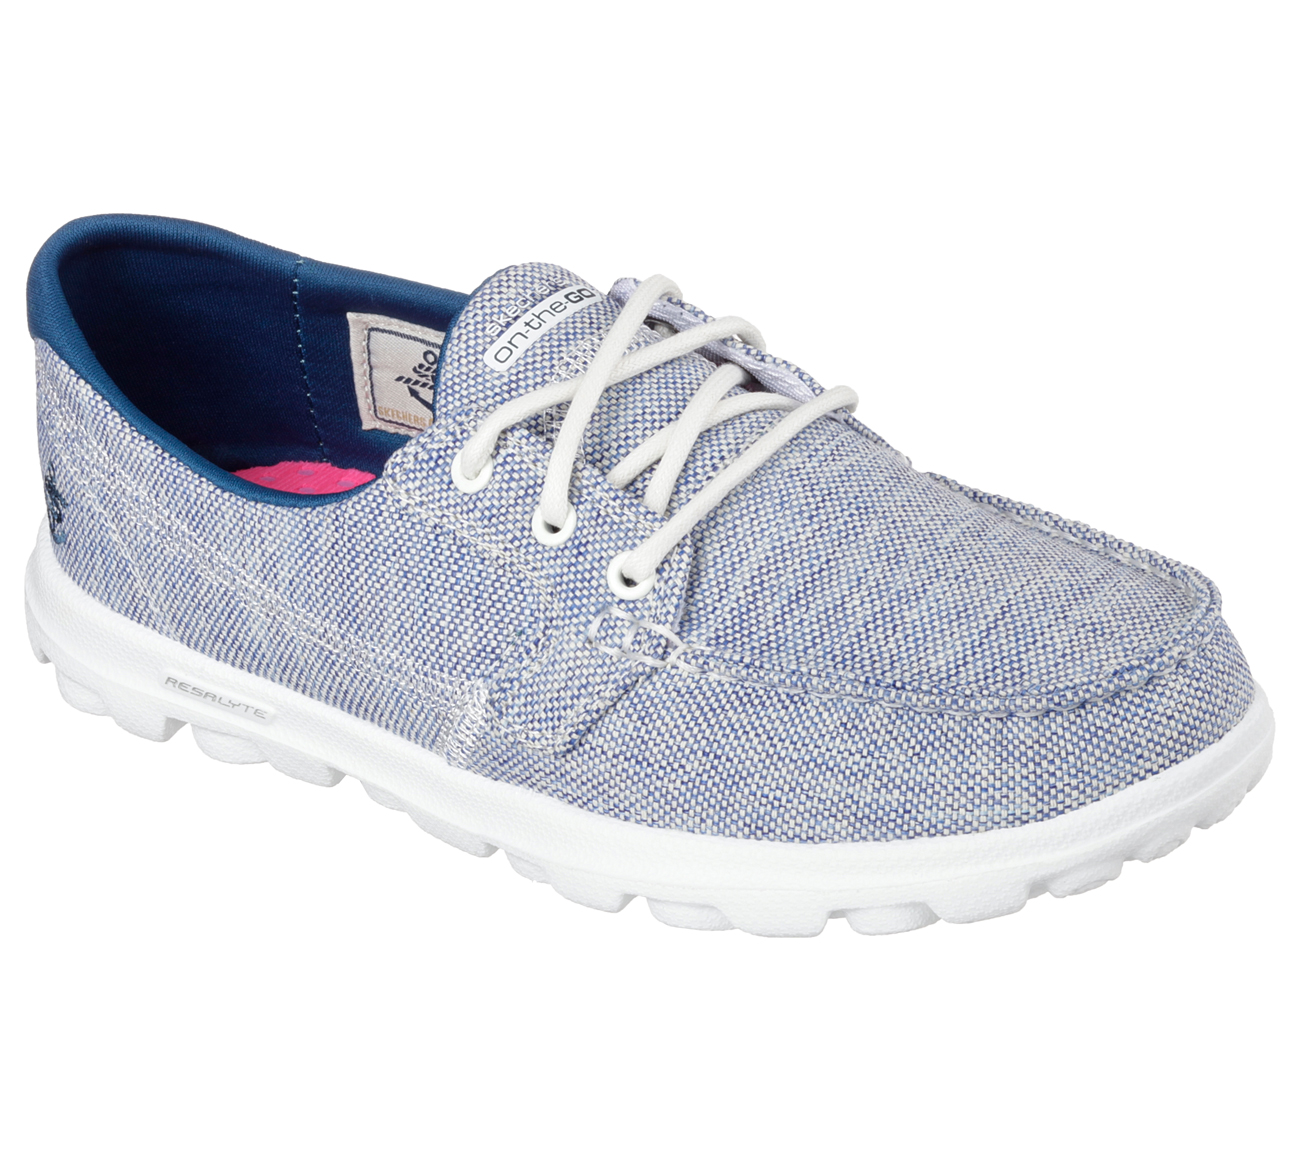 Buy Skechers Skechers On The Go Upwind On The Go Shoes